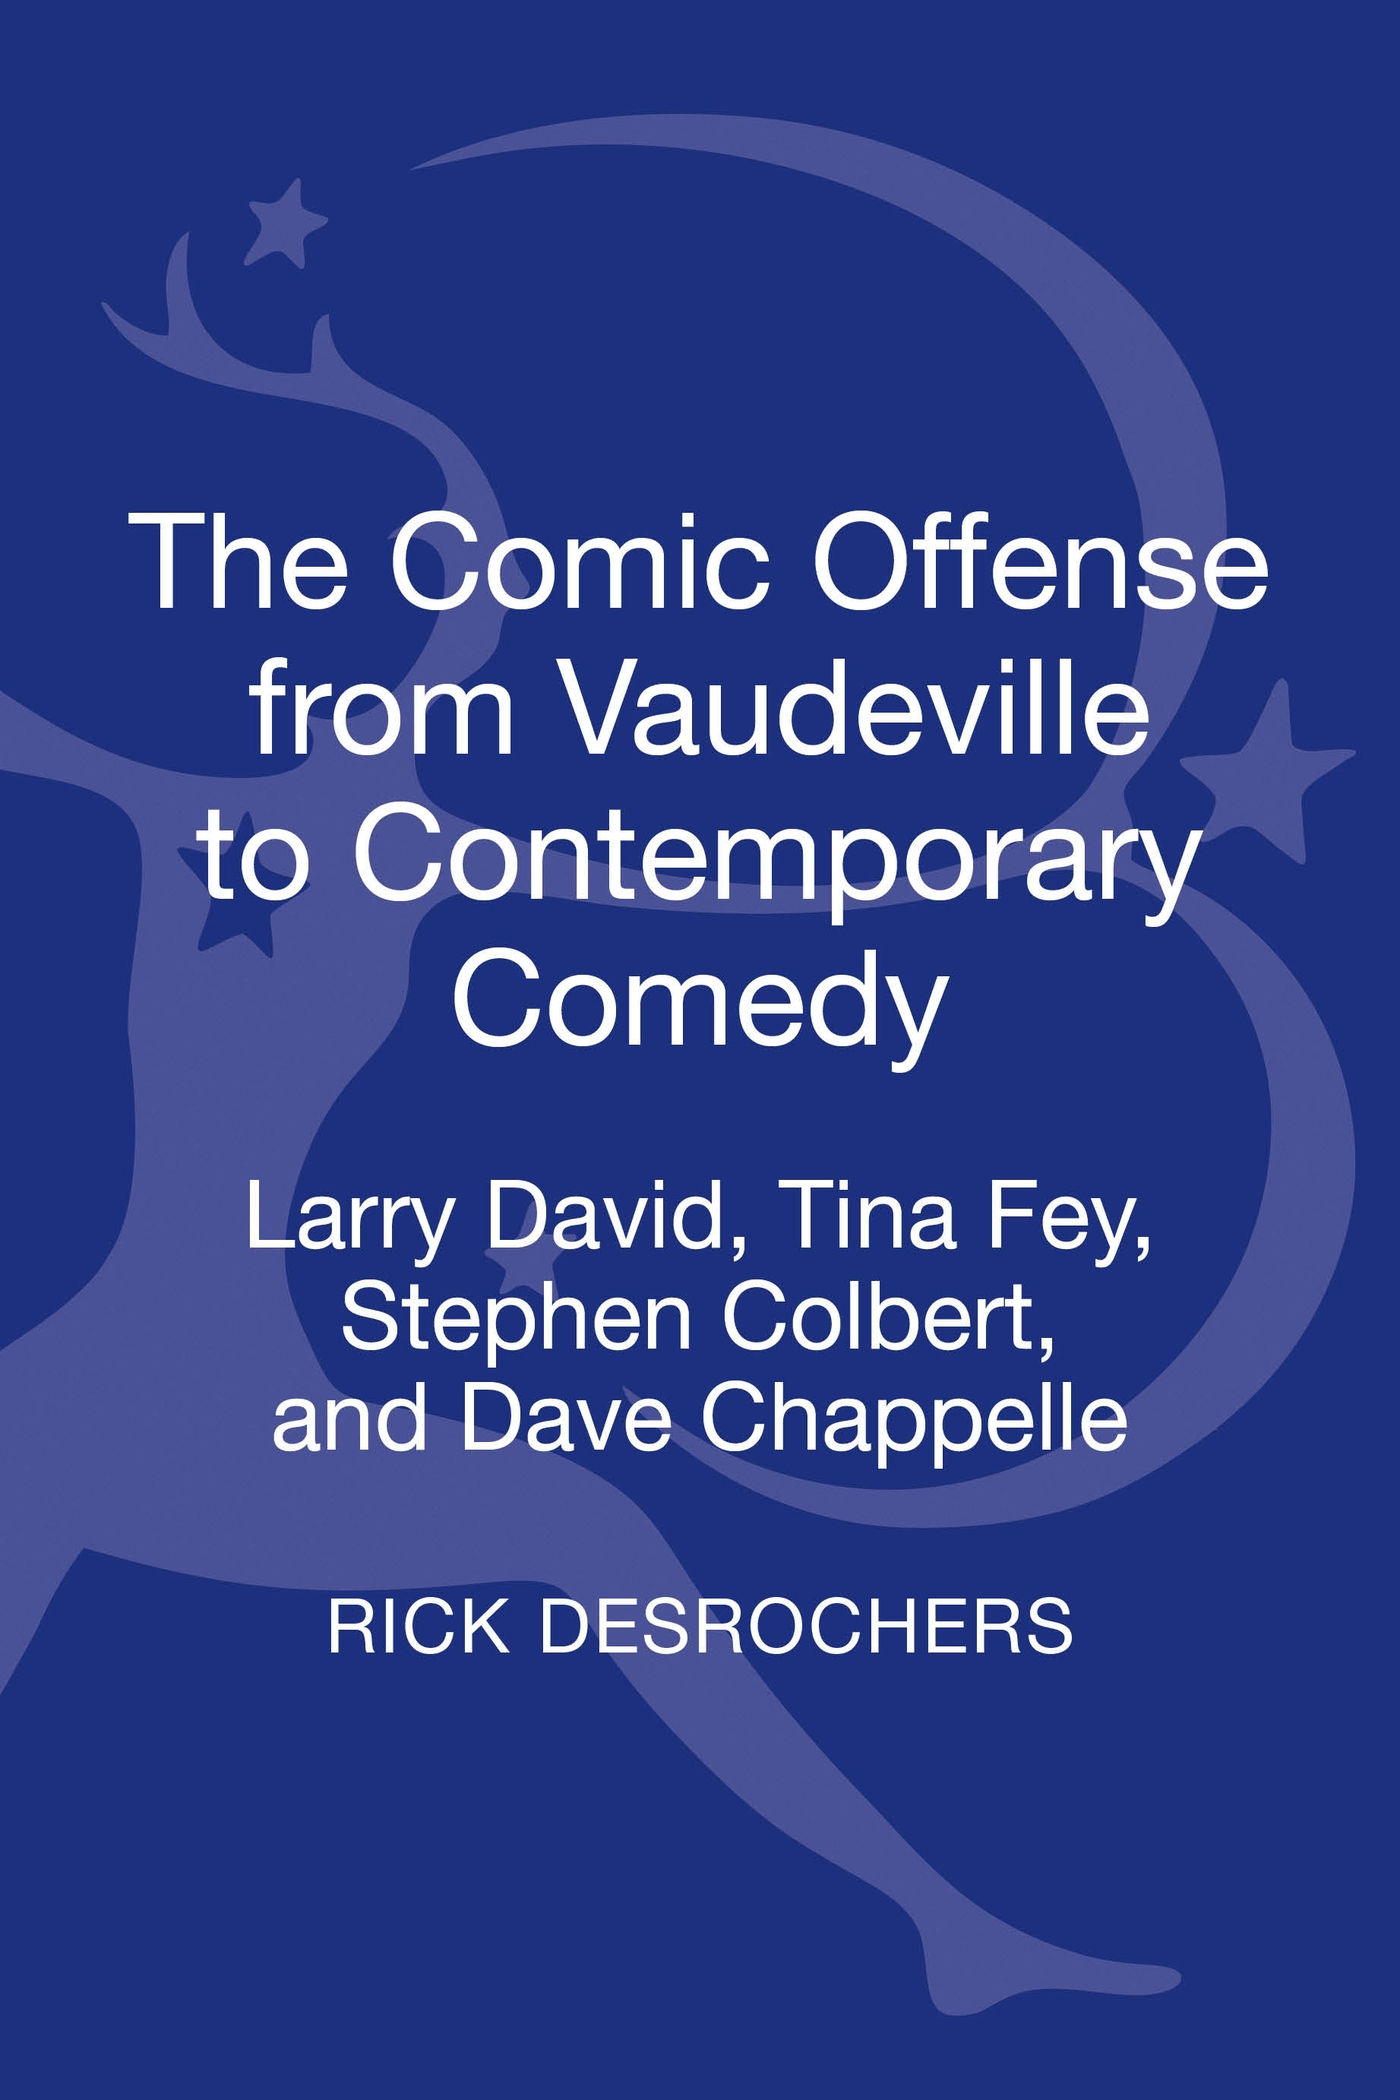 The comic offense from Vaudeville to contemporary comedy